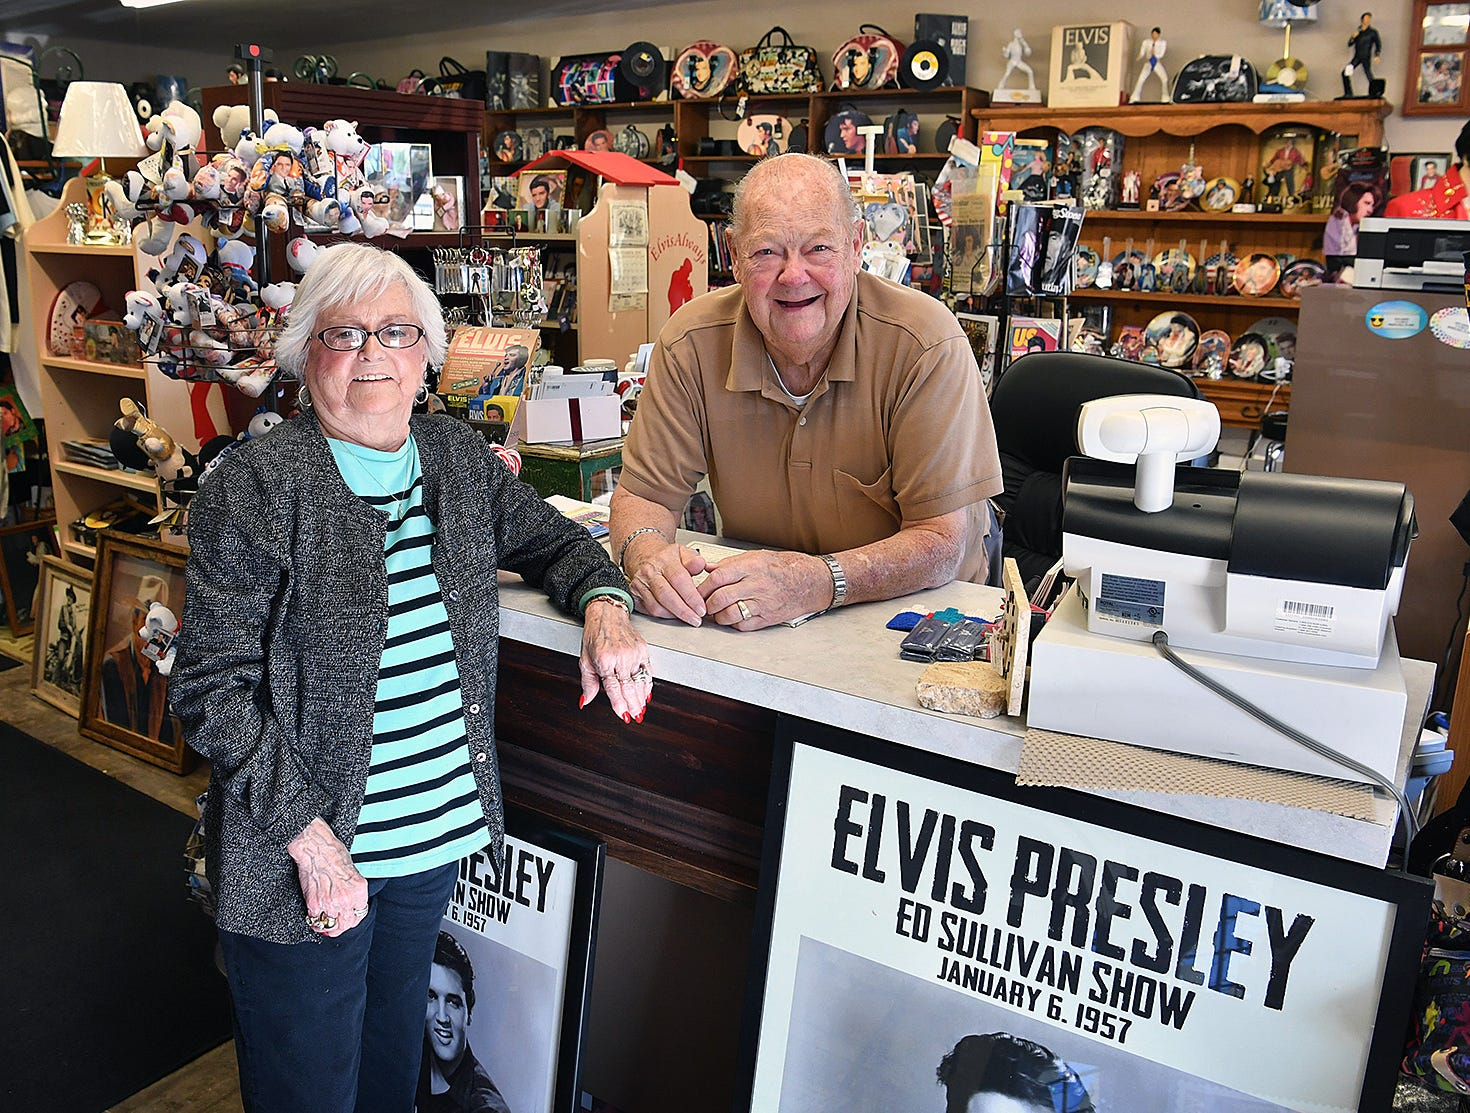 Margaret and Wally Waller own the Elvis Always Gifts and Collectibles store on 8th Street. January 8 is Elvis' birthday, he would have been 84 years old.